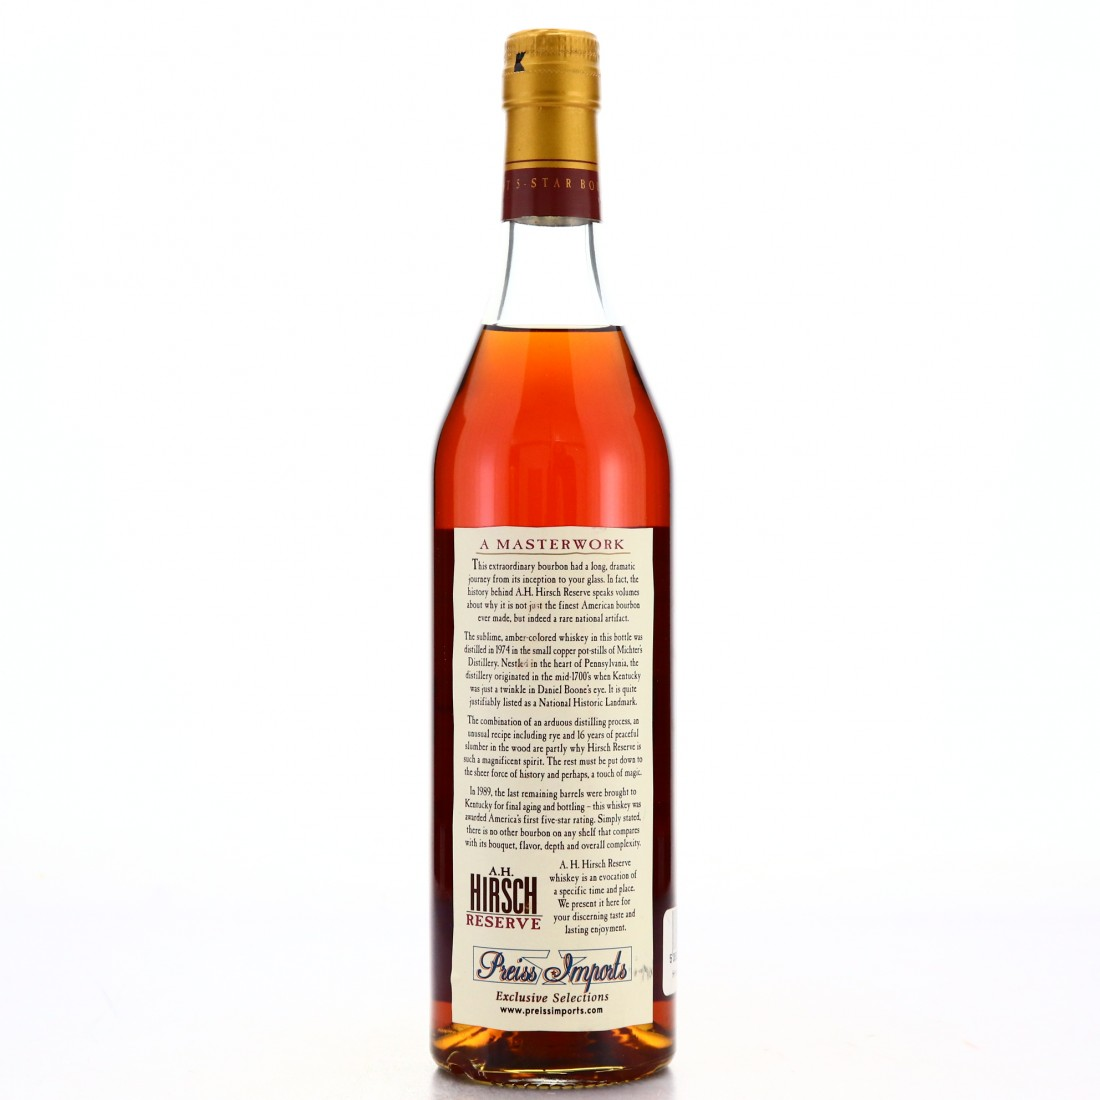 A.H. Hirsch Reserve 1974 16 Year Old Bourbon / 2003 Release